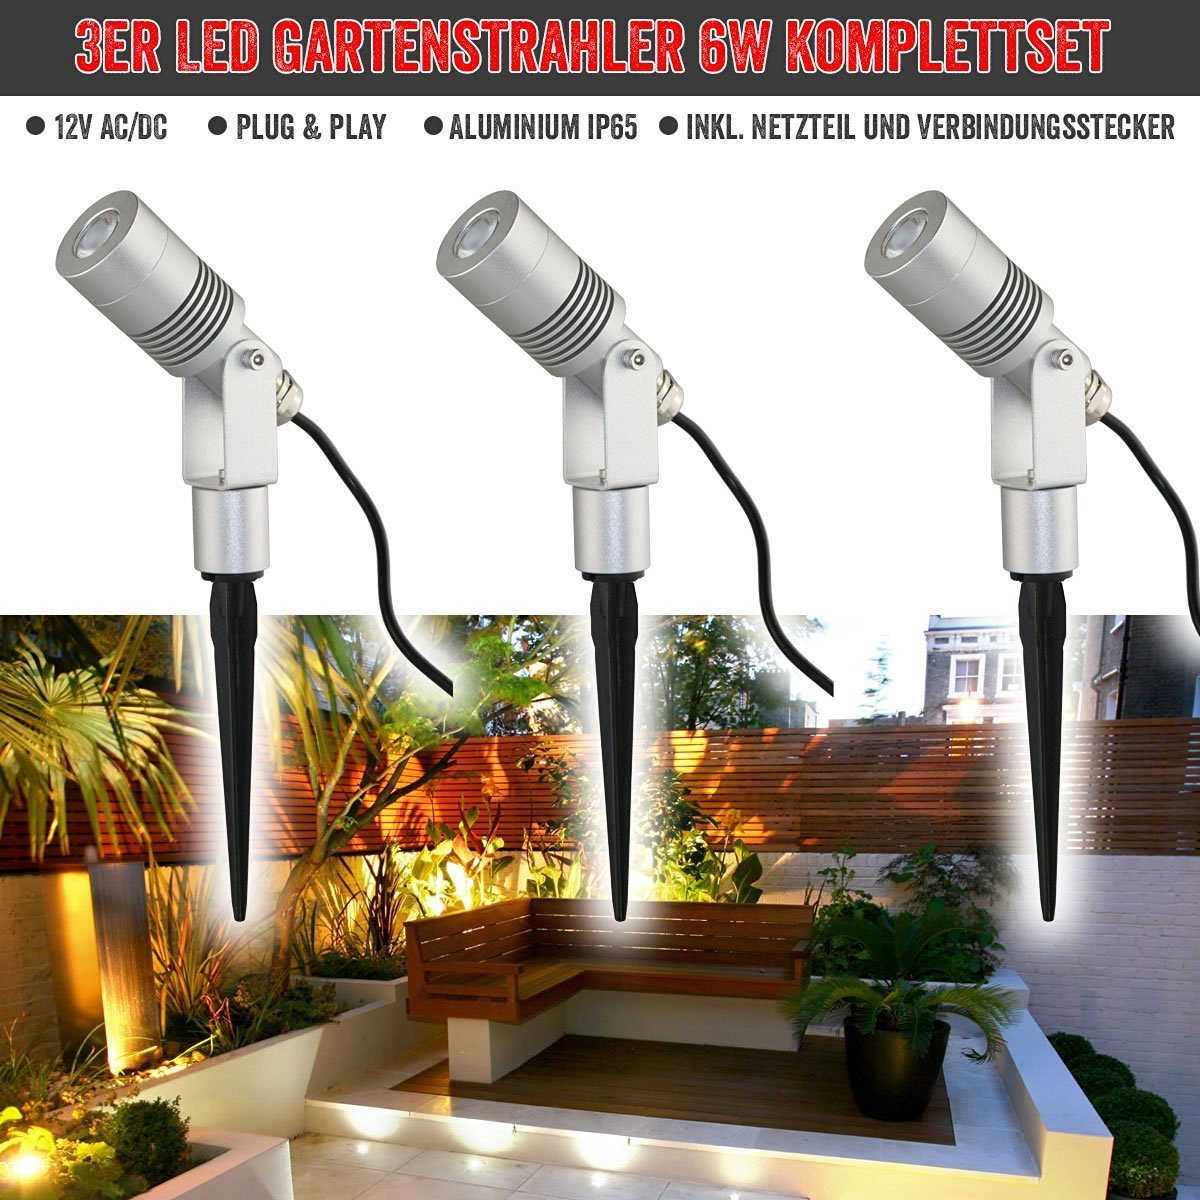 led gartenstrahler 6w set silber 3000k 11102 kit si 3k gartenbeleuchtung vbled. Black Bedroom Furniture Sets. Home Design Ideas